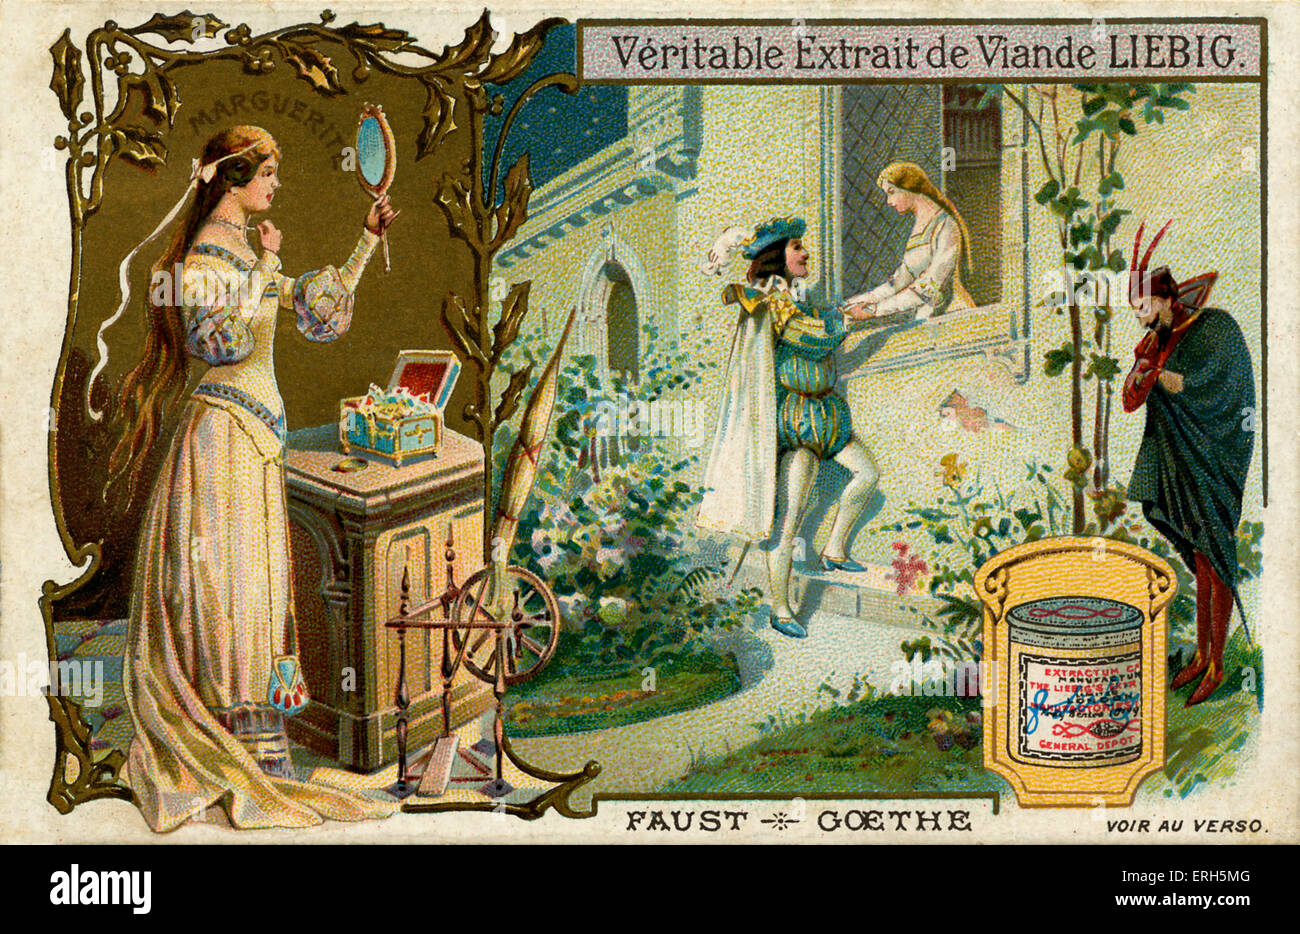 Faust by Charles Gounod  - illustration on Liebig meat extract collectible card. Opera (1859) in five acts based - Stock Image